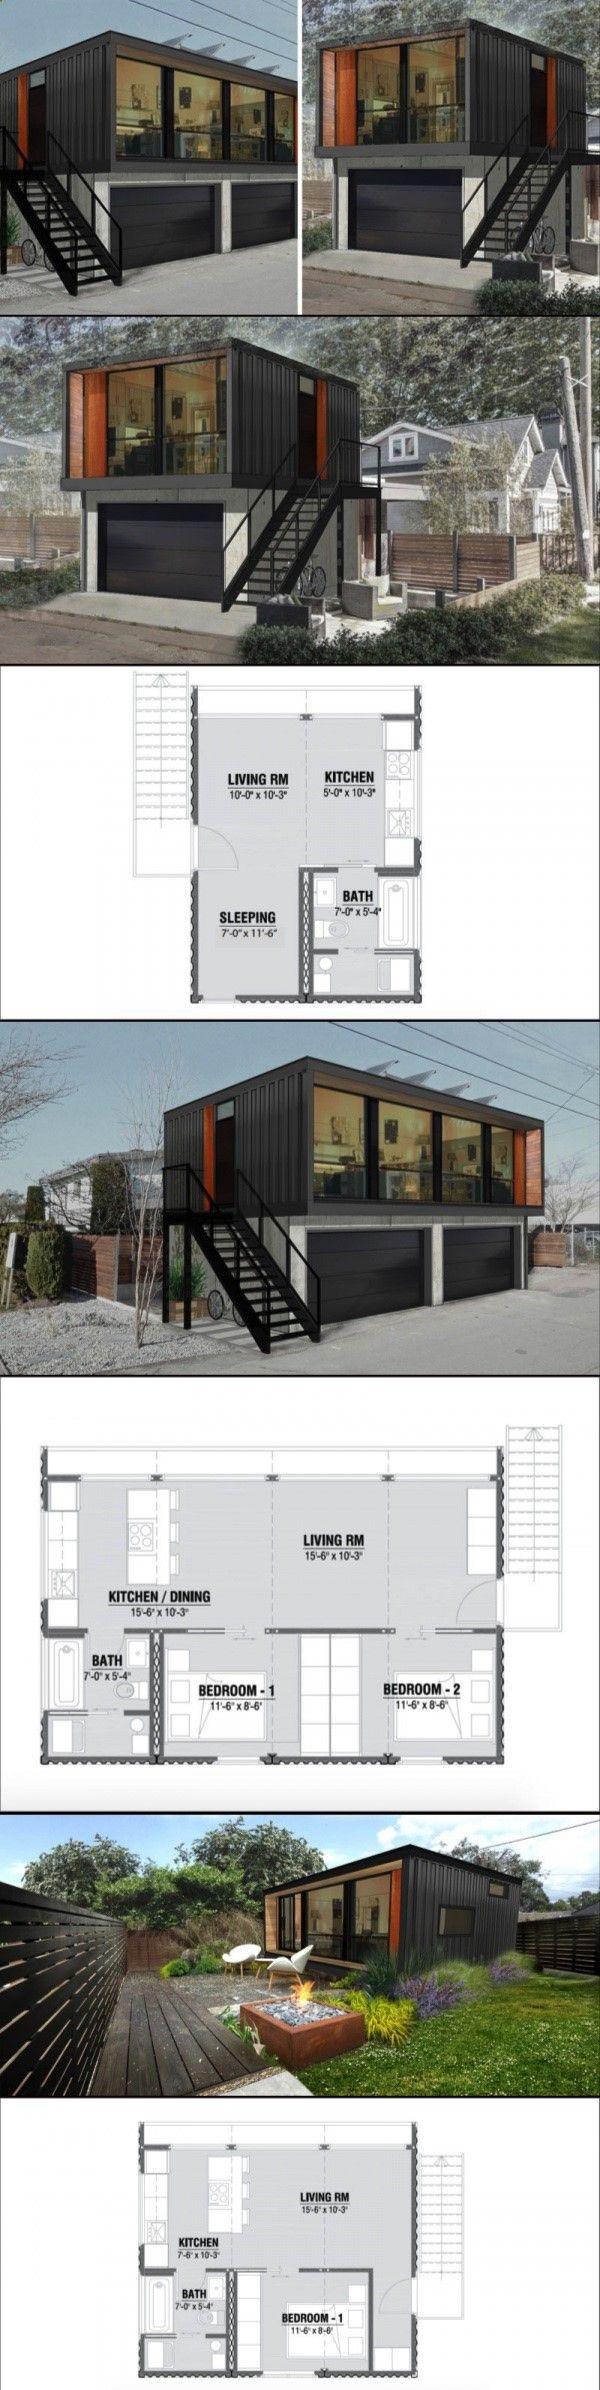 520 best home images on Pinterest | Shipping container homes ...